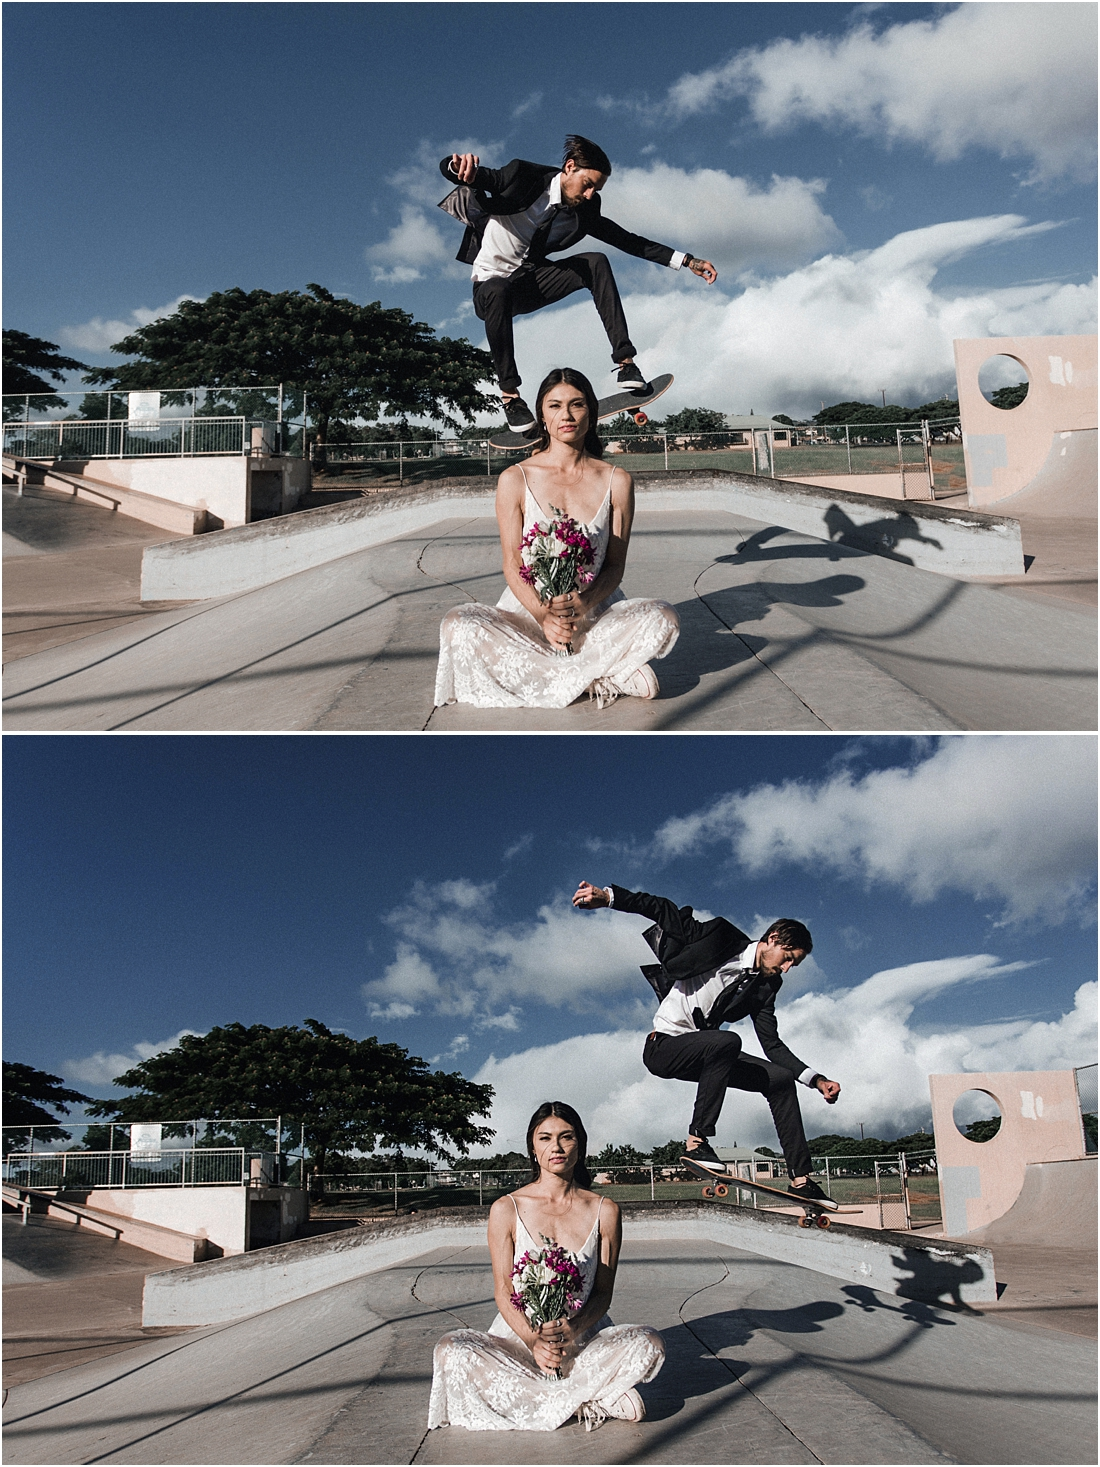 a-skateboard-wedding-5